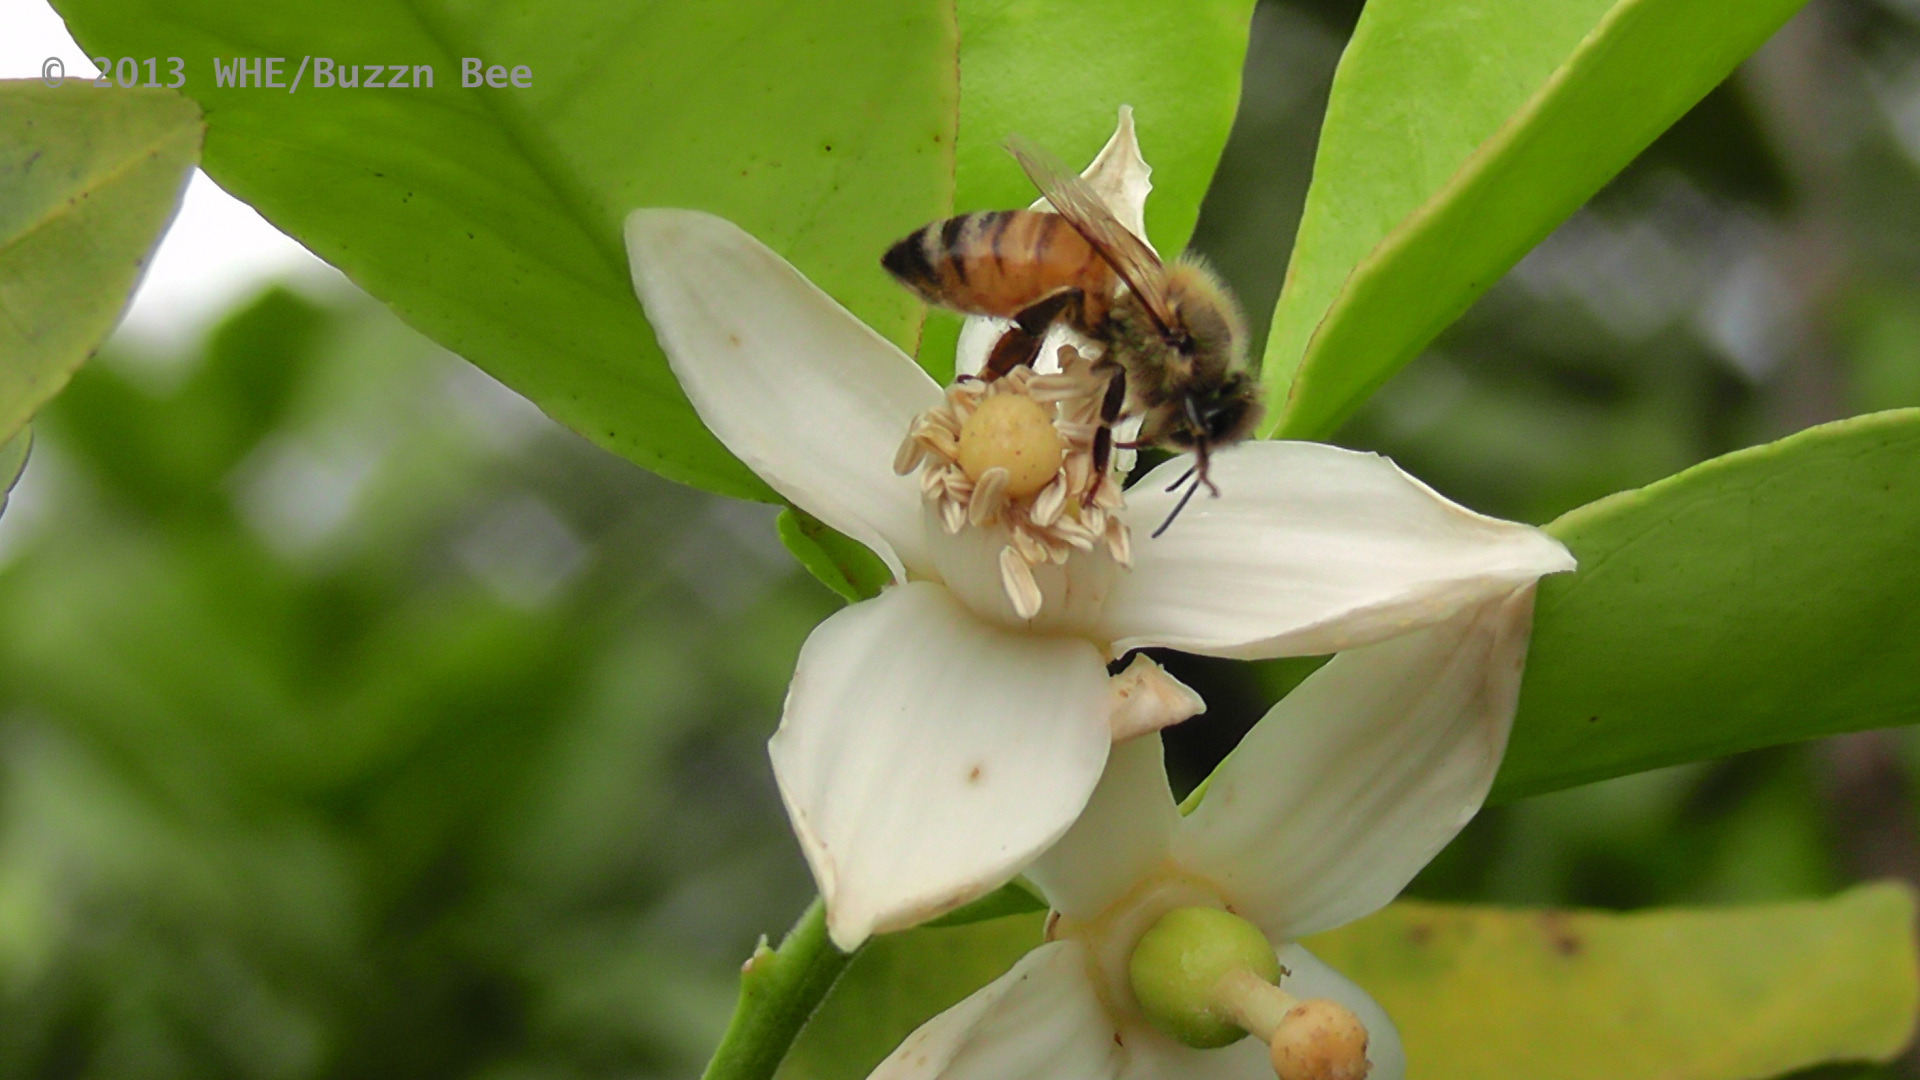 A bee collects pollen and nectar from a flower